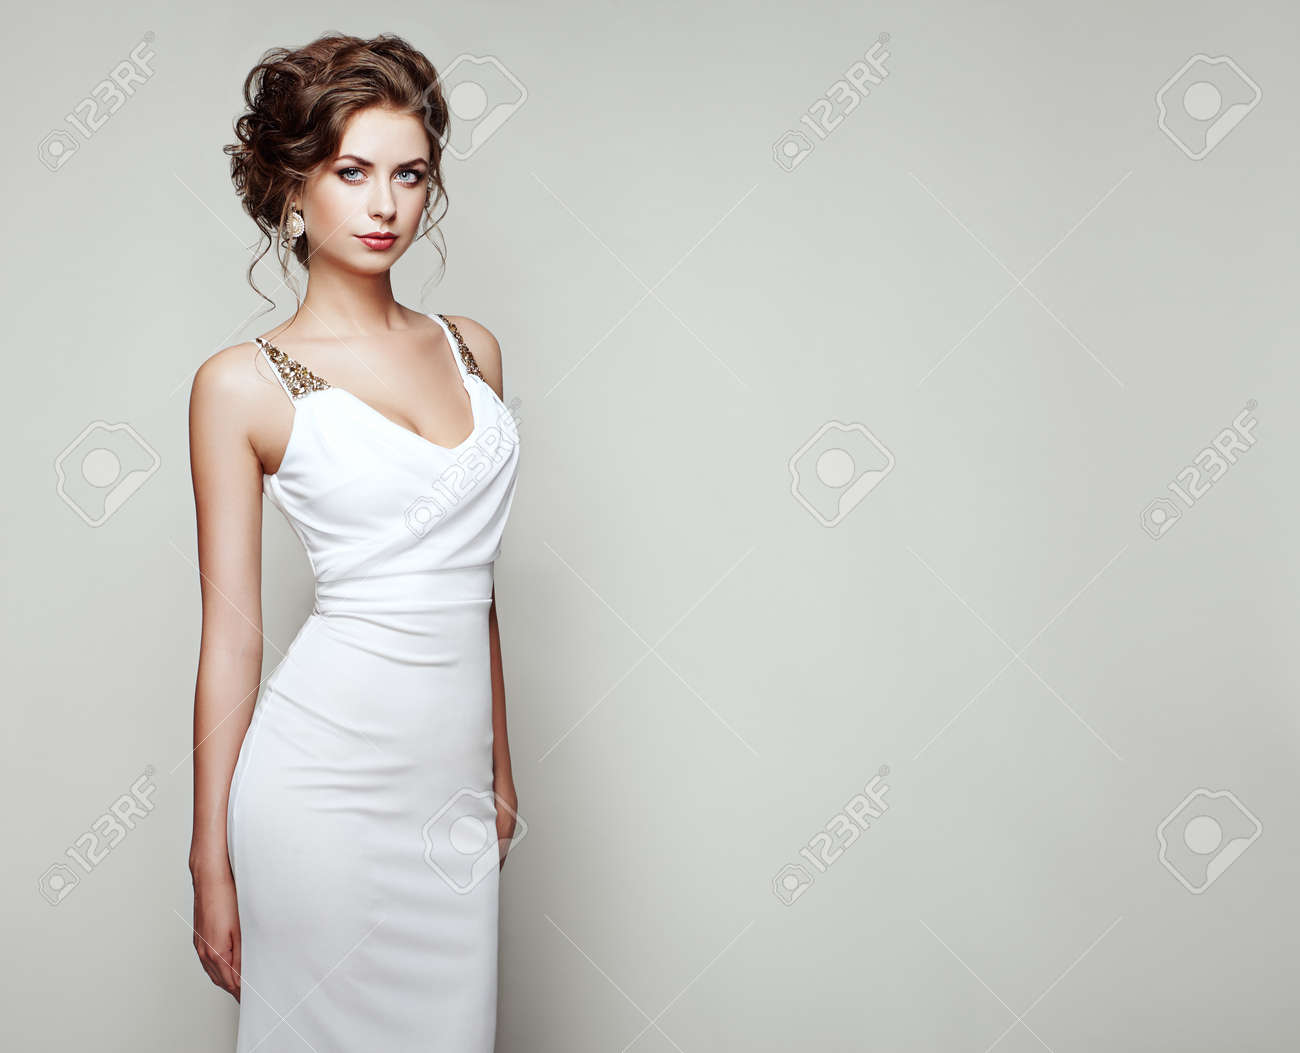 Fashion portrait of beautiful woman in elegant white dress. Girl with elegant hairstyle and jewelry - 64431543